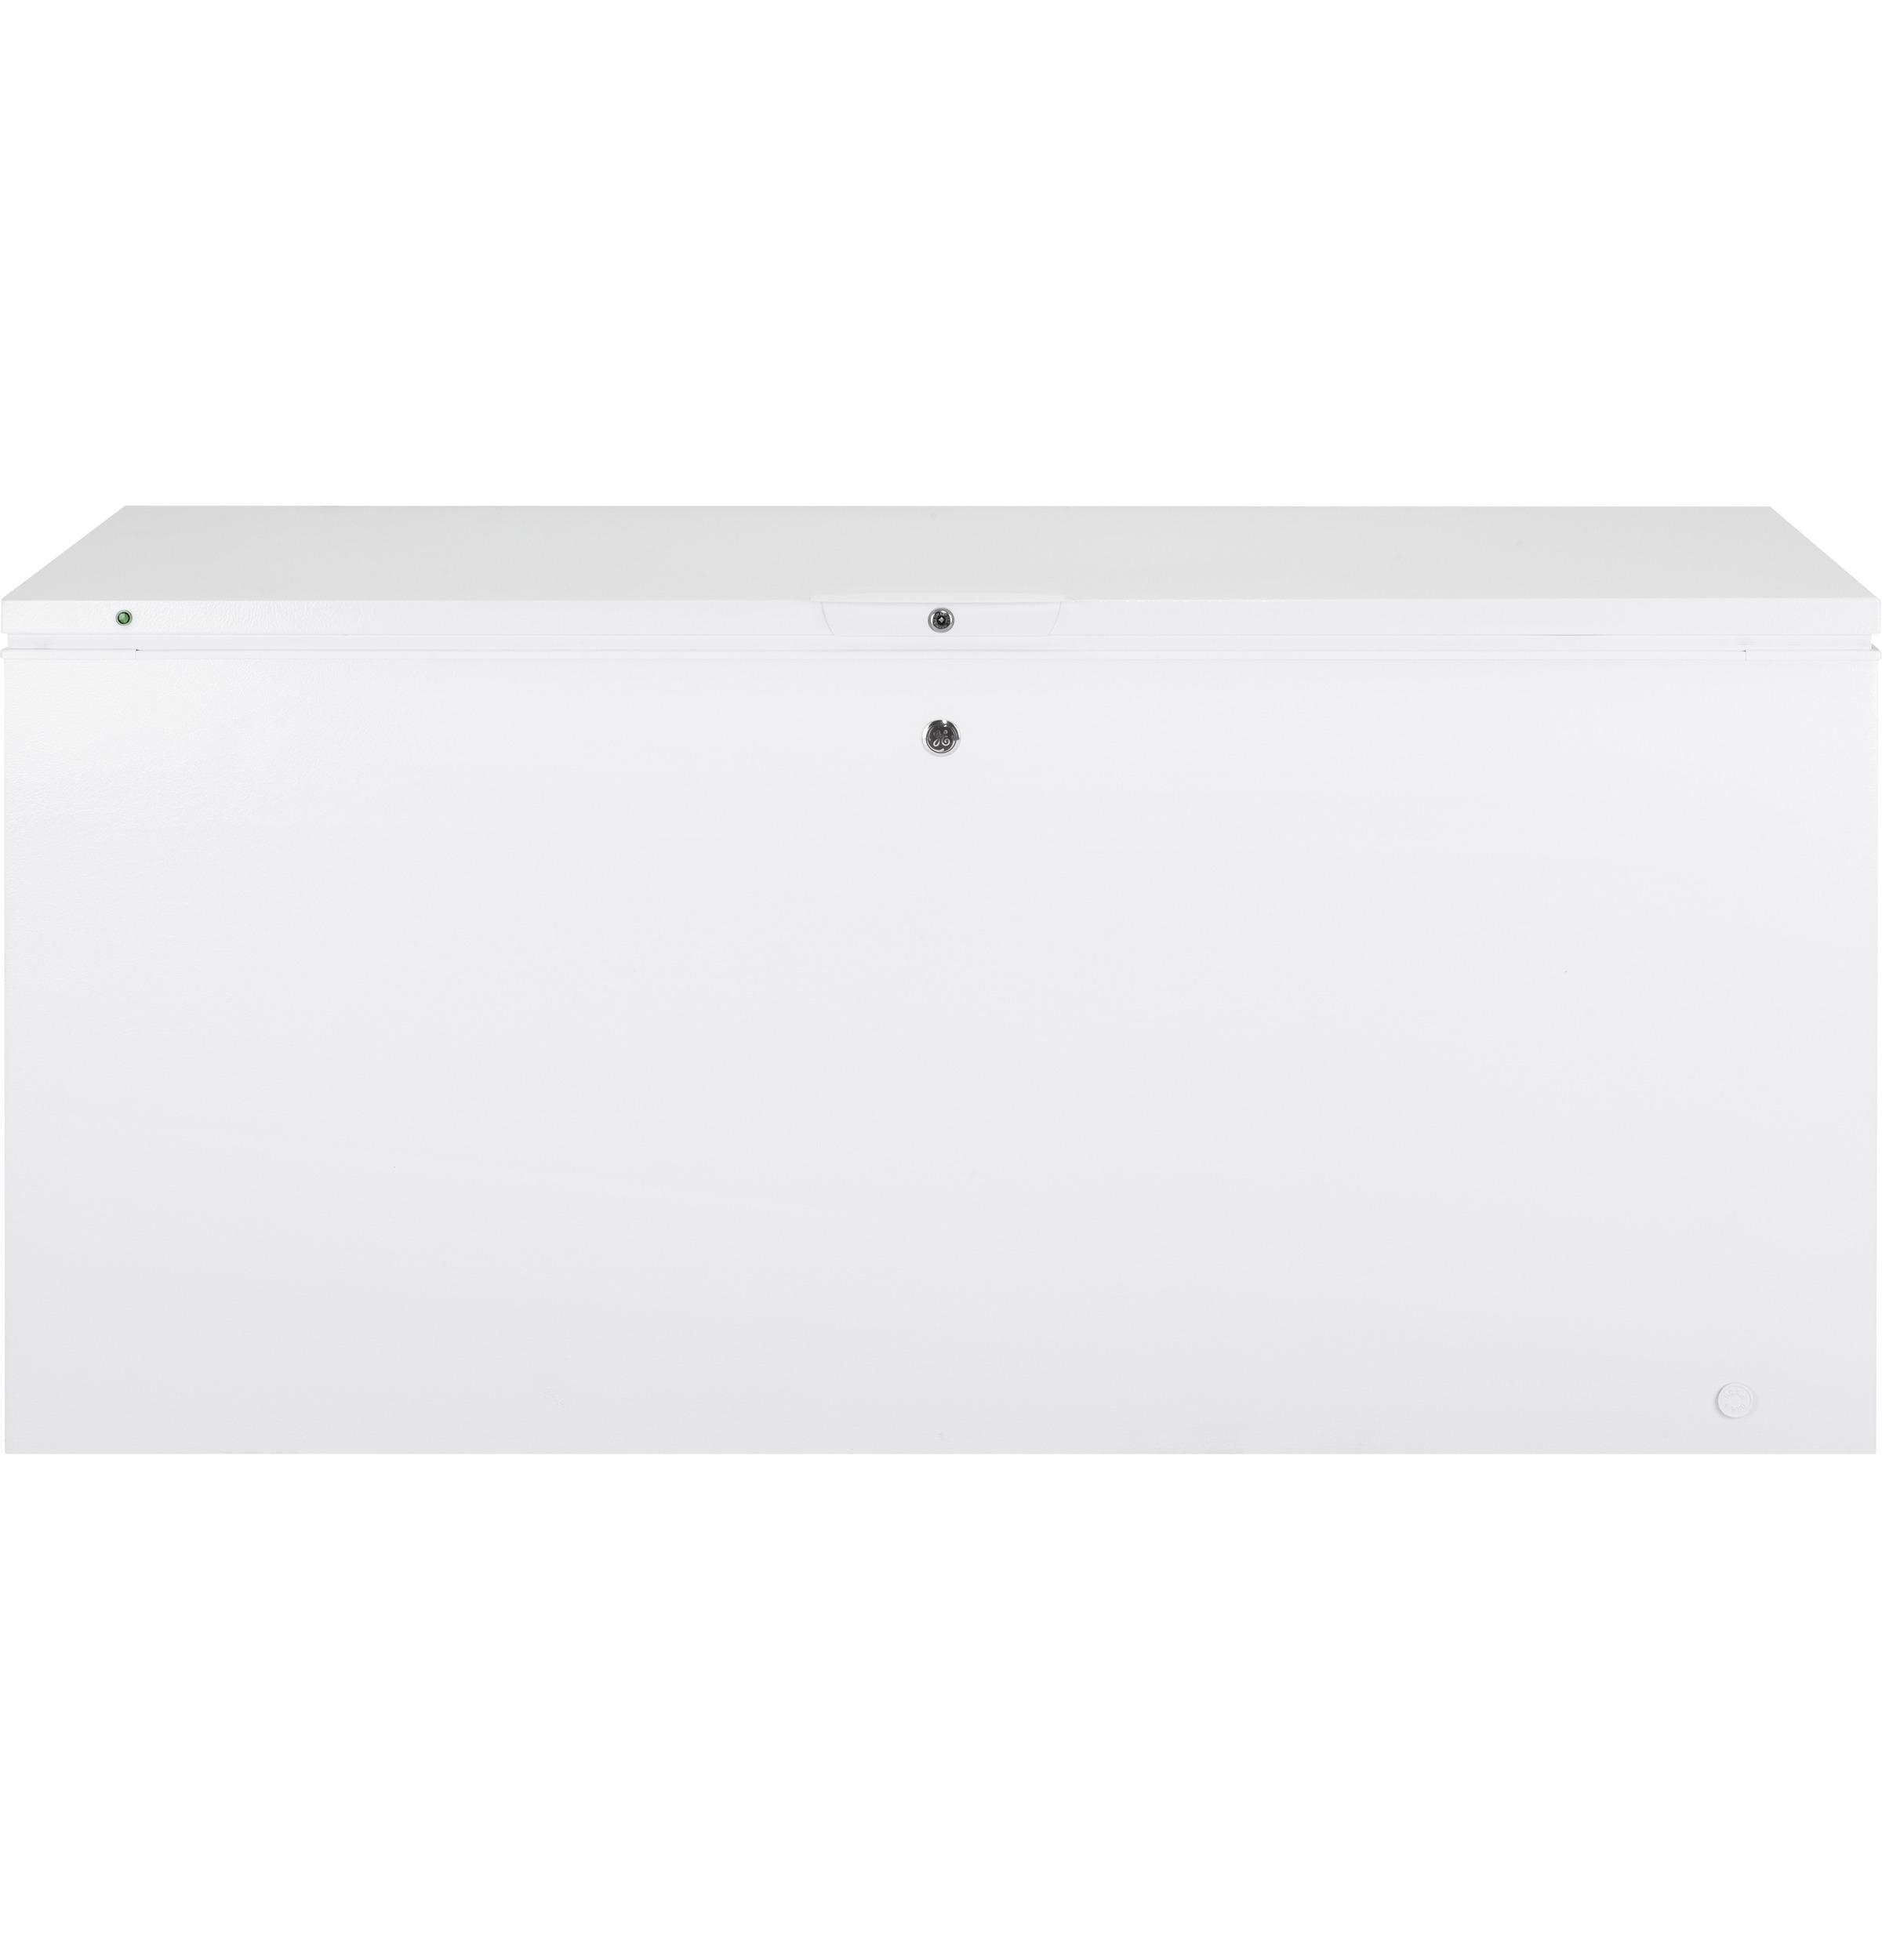 GE(R) 21.6 Cu. Ft. Manual Defrost Chest Freezer